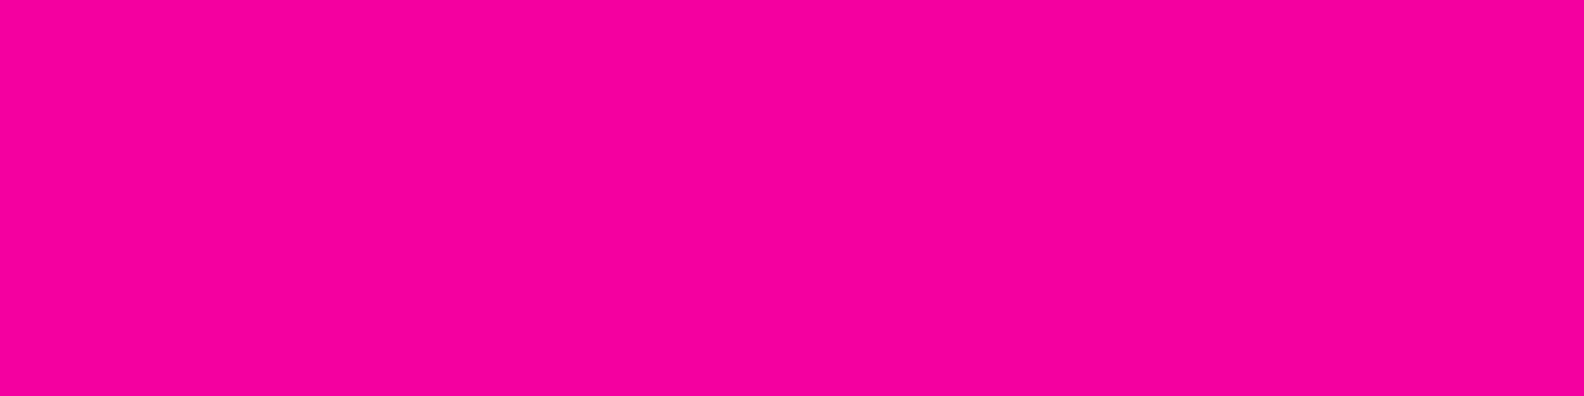 1584x396 Hollywood Cerise Solid Color Background